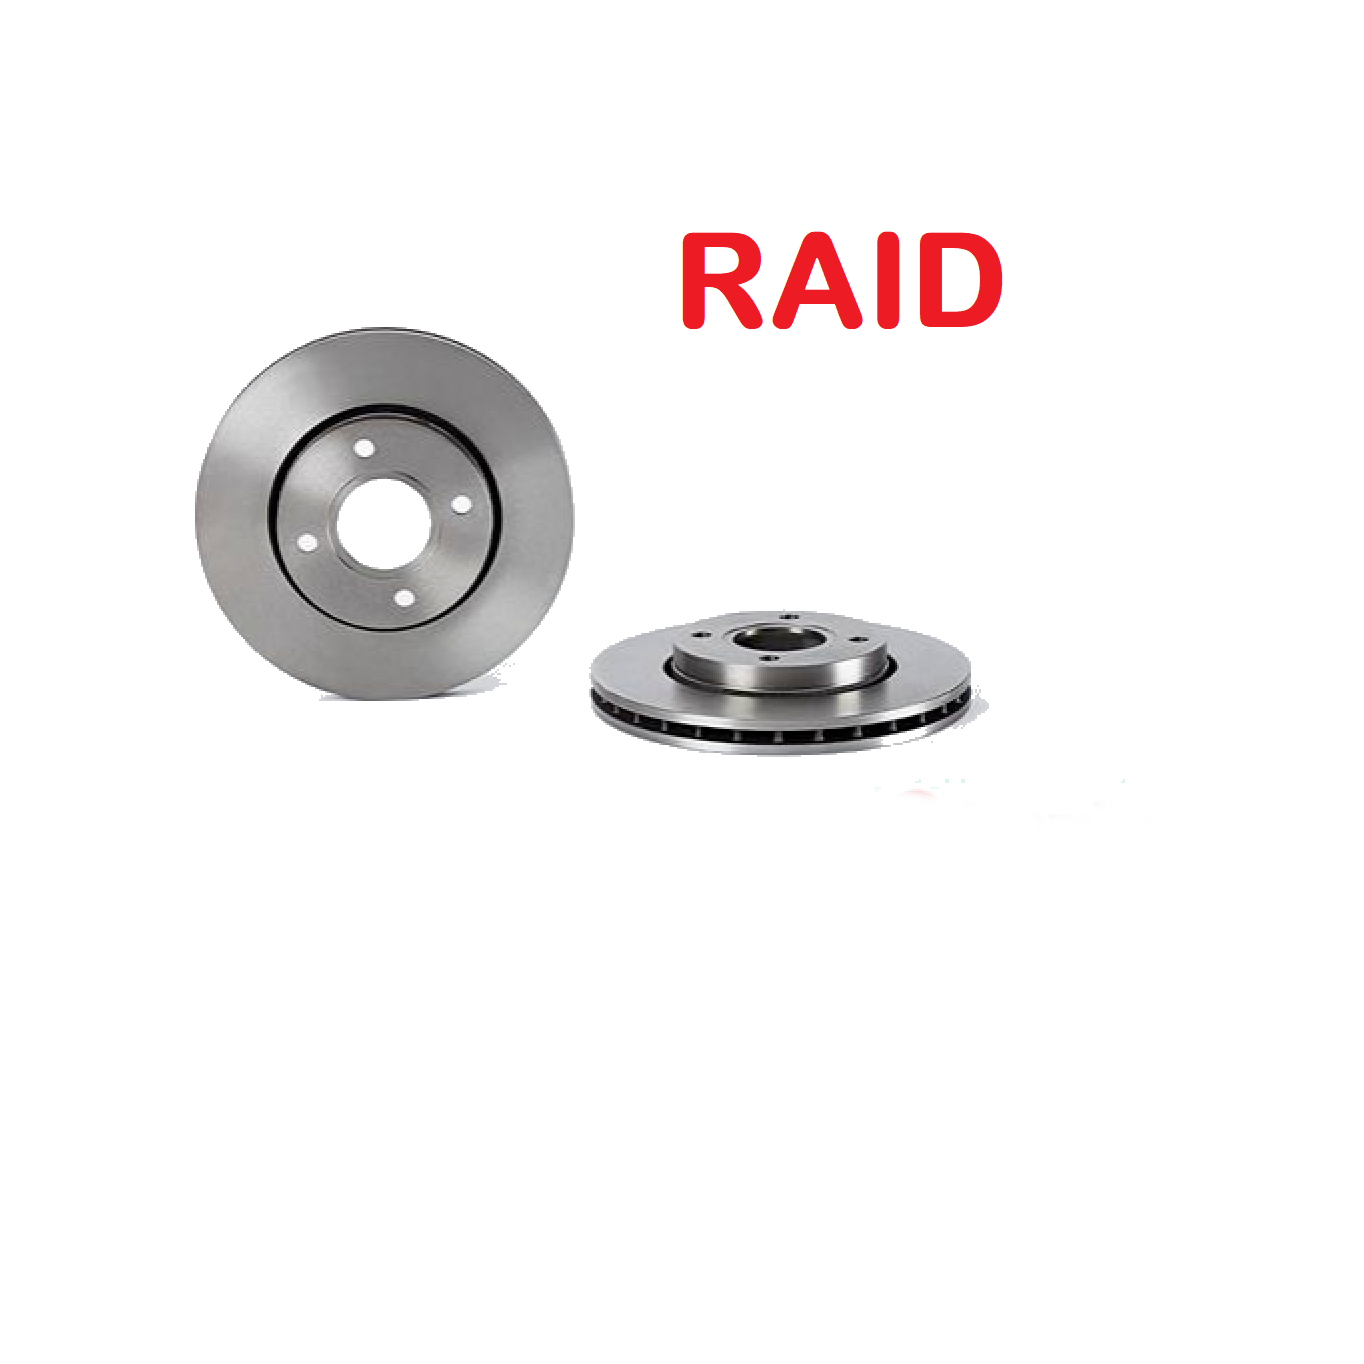 PAIR OF FRONT BRAKE DISCS FORD ESCORT - ORION RAID FOR 5025950